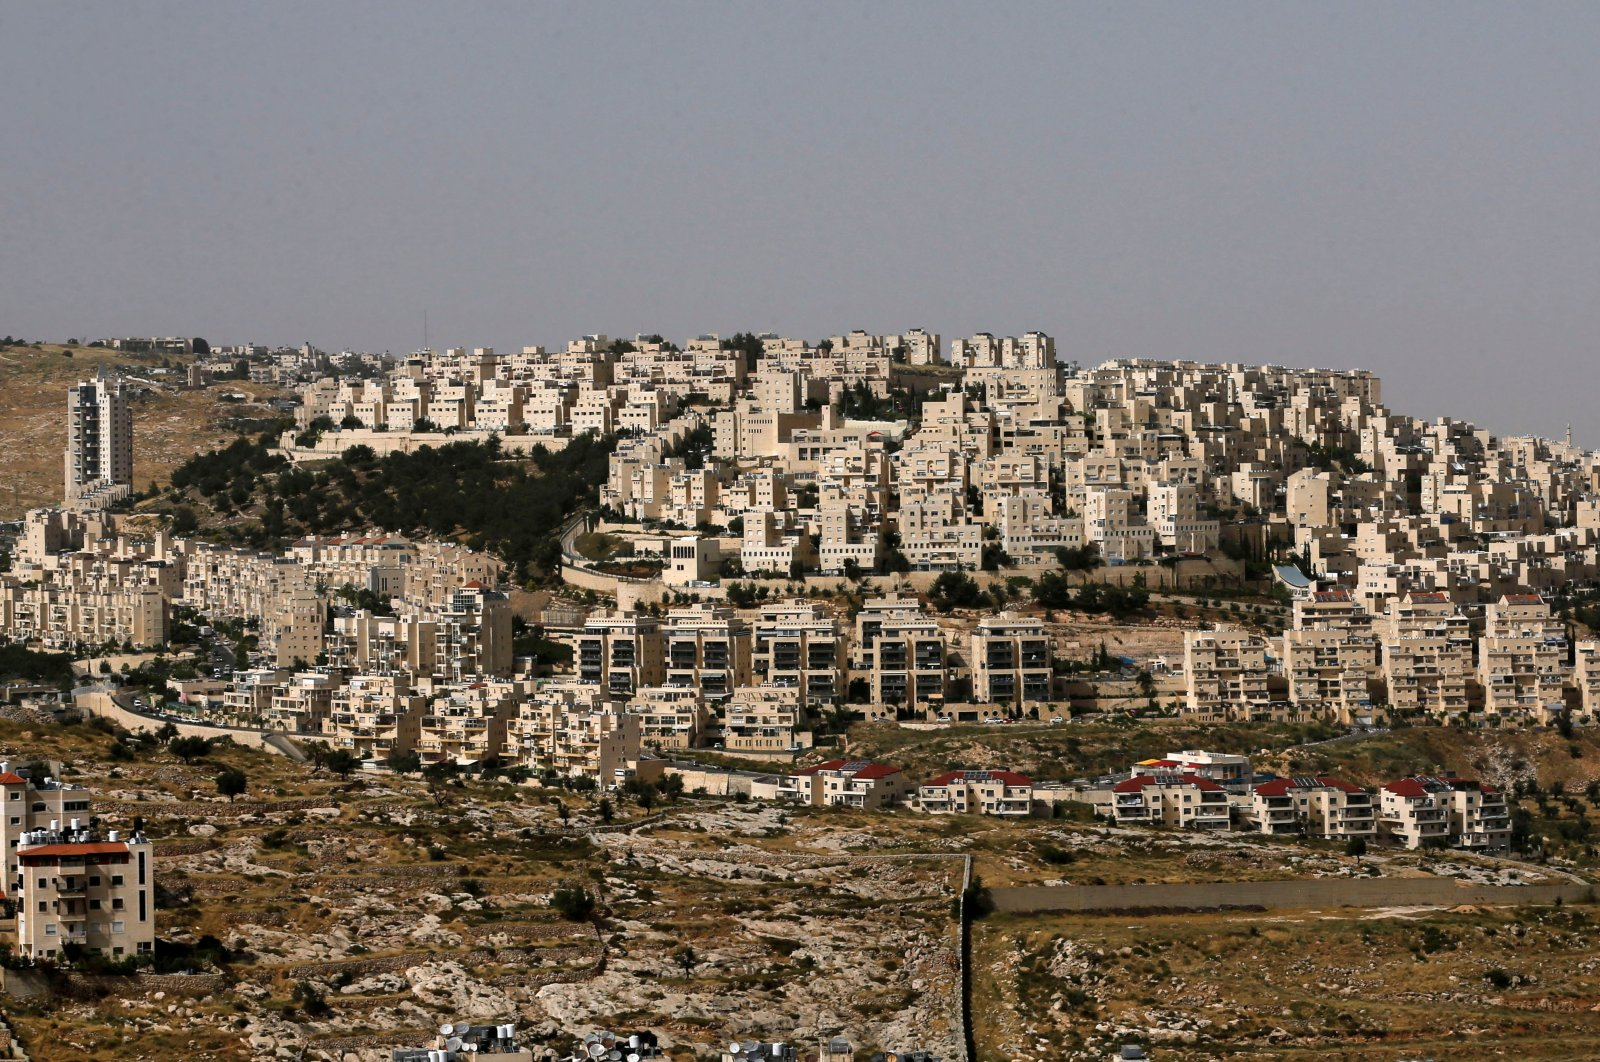 The Israeli settlement of Har Homa in the Israeli-occupied West Bank, Palestine, May 19, 2020. (Reuters Photo)